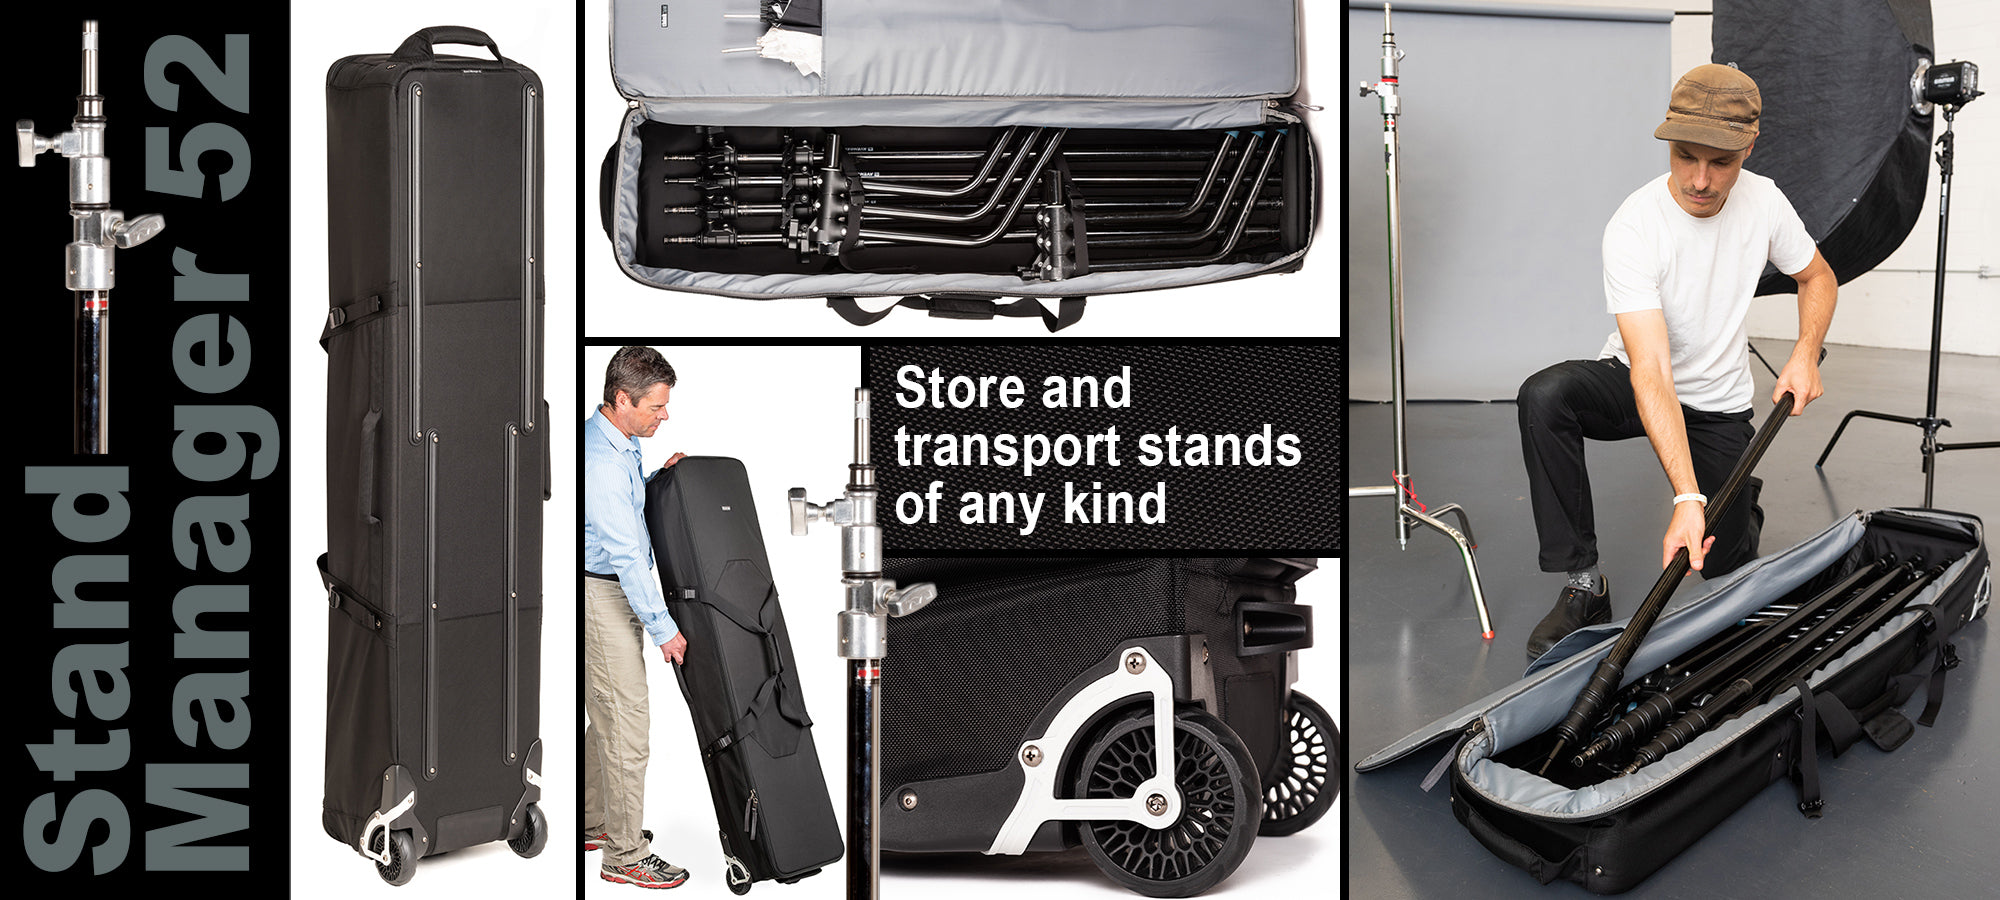 The Stand Manager 52 rolling case is an ideal solution for storing and transporting stands of any kind.